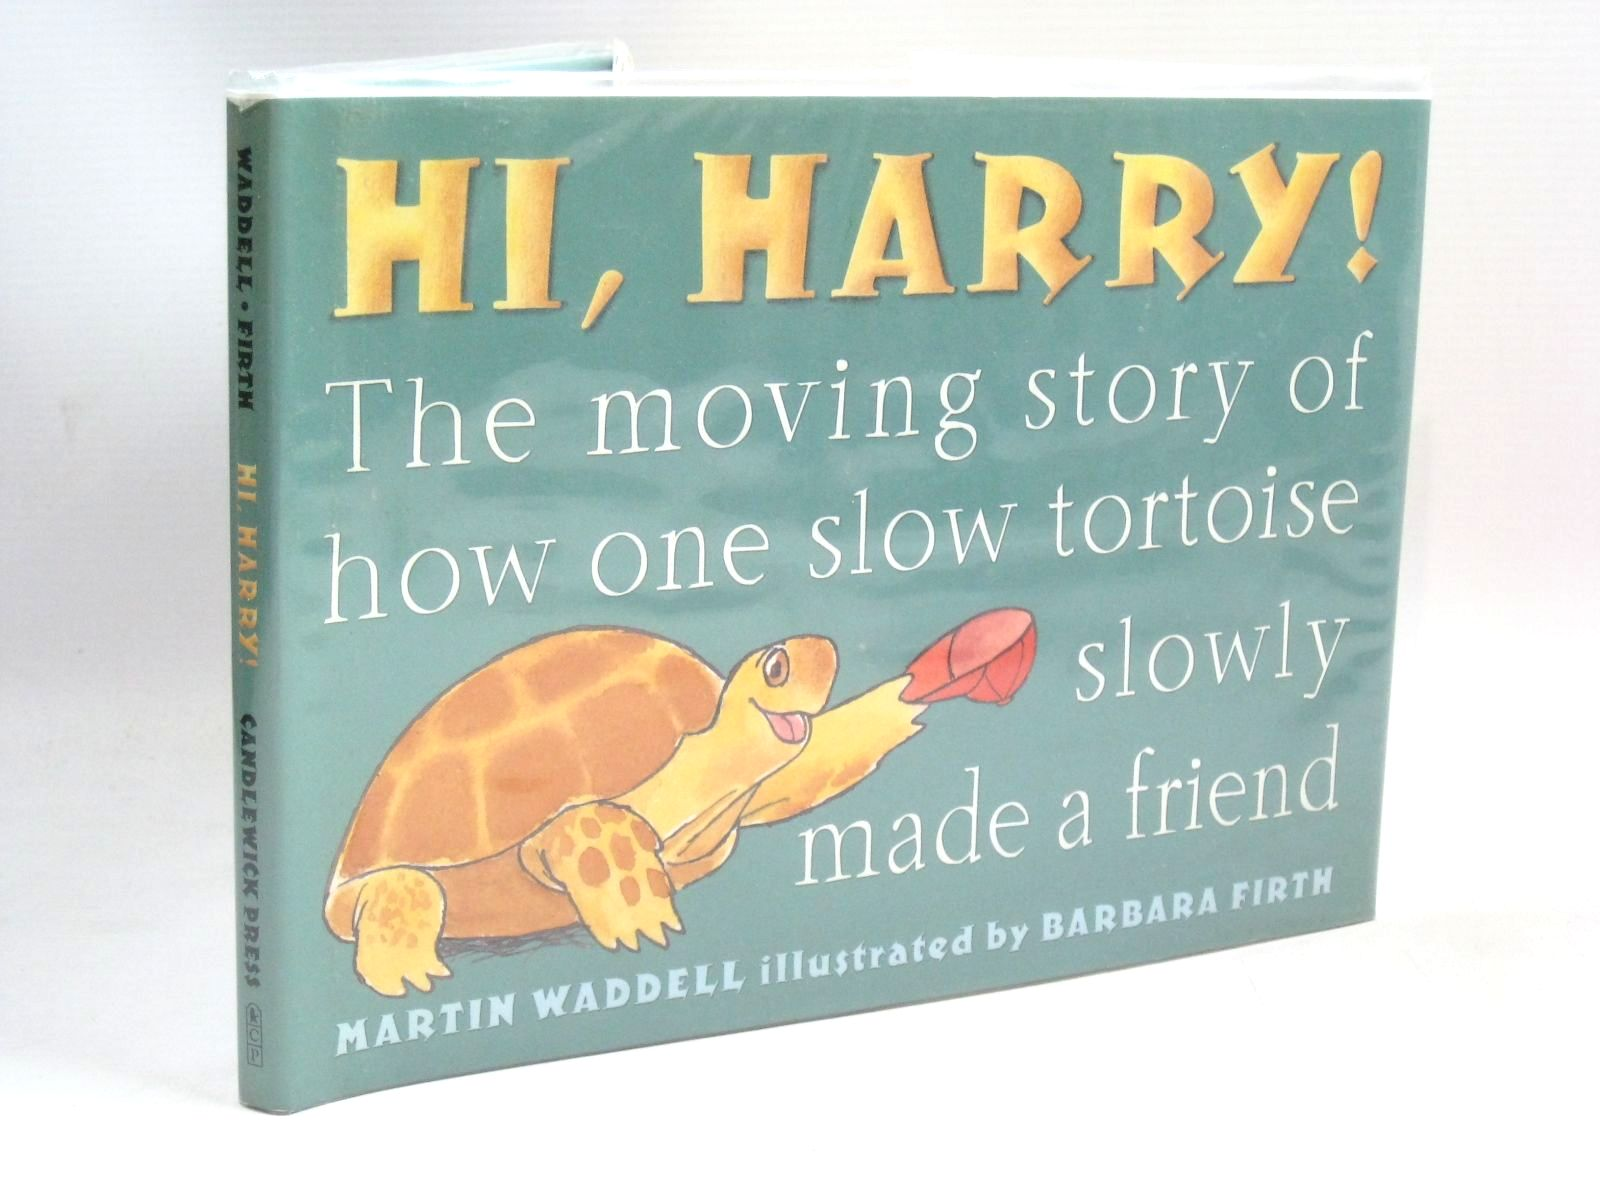 Photo of HI, HARRY! written by Waddell, Martin illustrated by Firth, Barbara published by Candlewick Press (STOCK CODE: 1315855)  for sale by Stella & Rose's Books